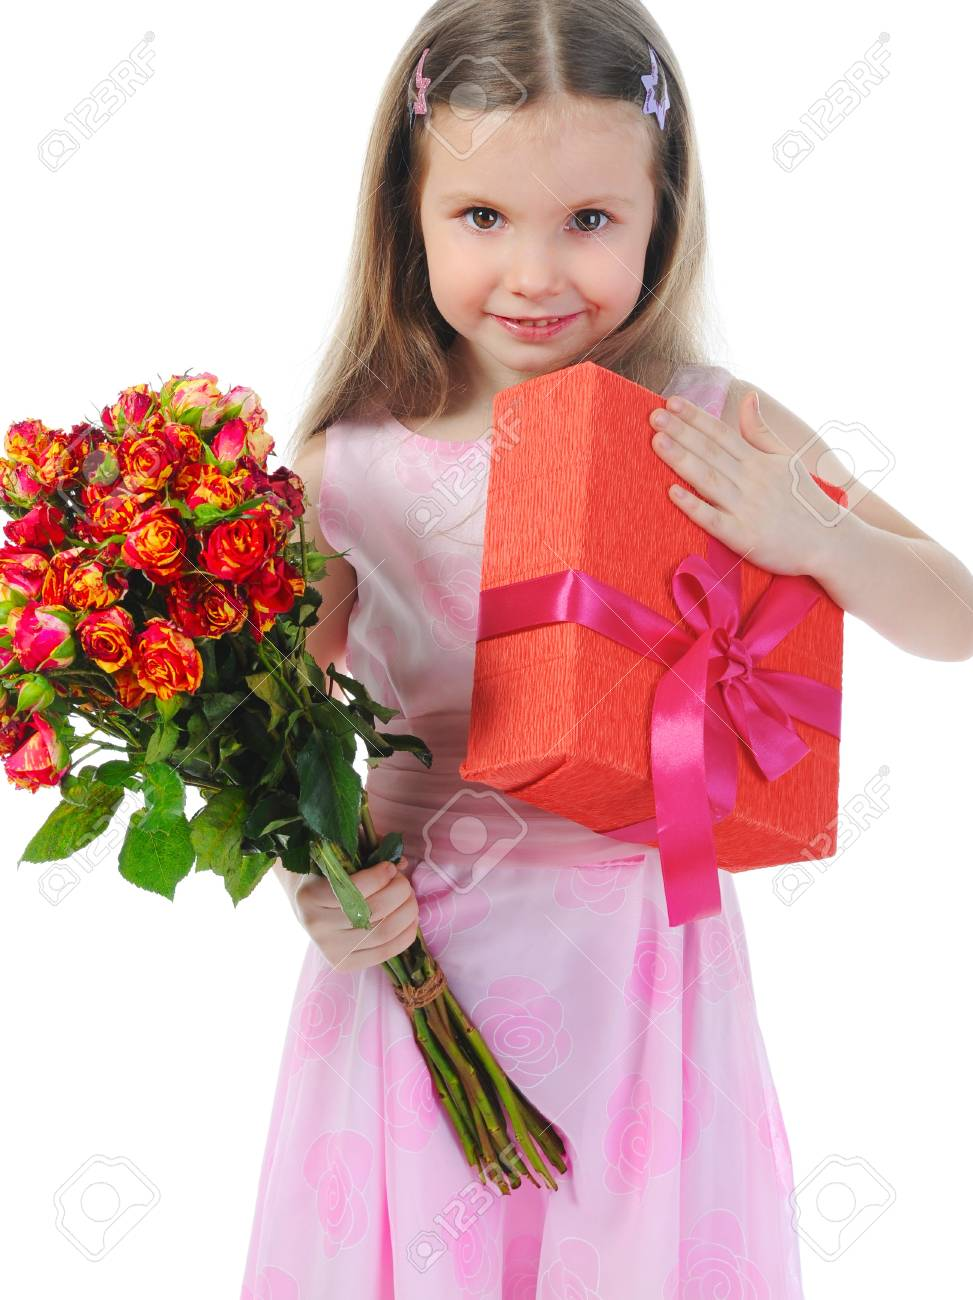 little girl with a rose. Stock Photo - 9125429